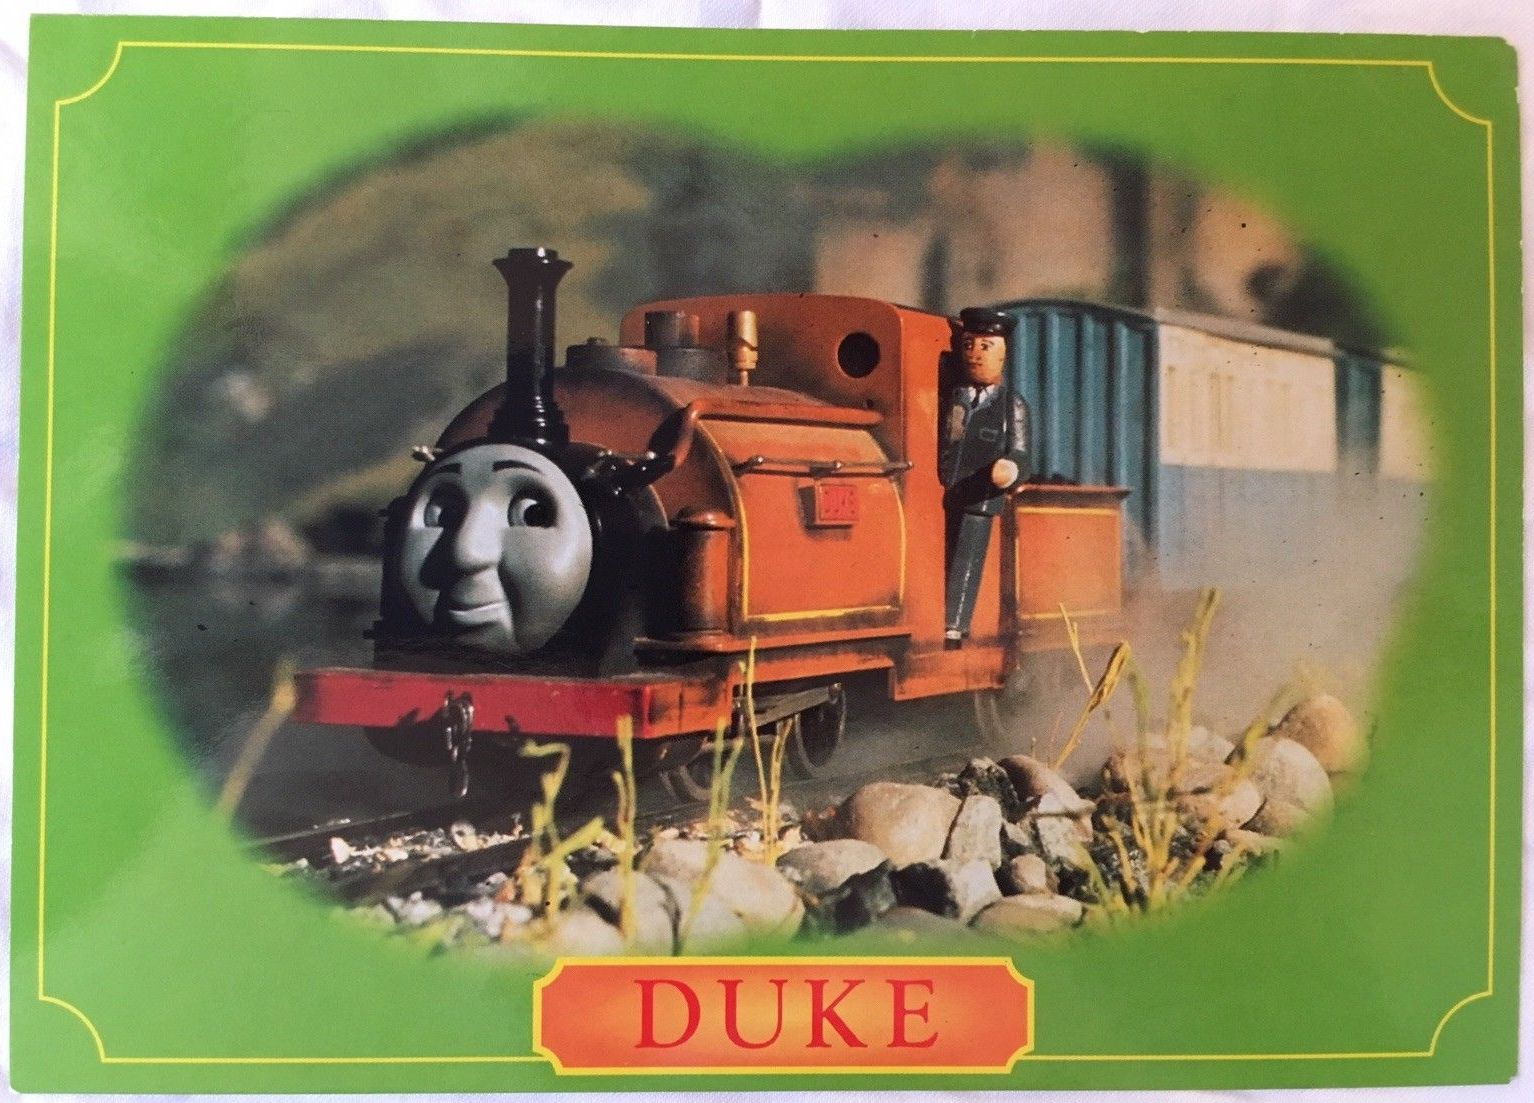 File:DukePostcard.jpeg